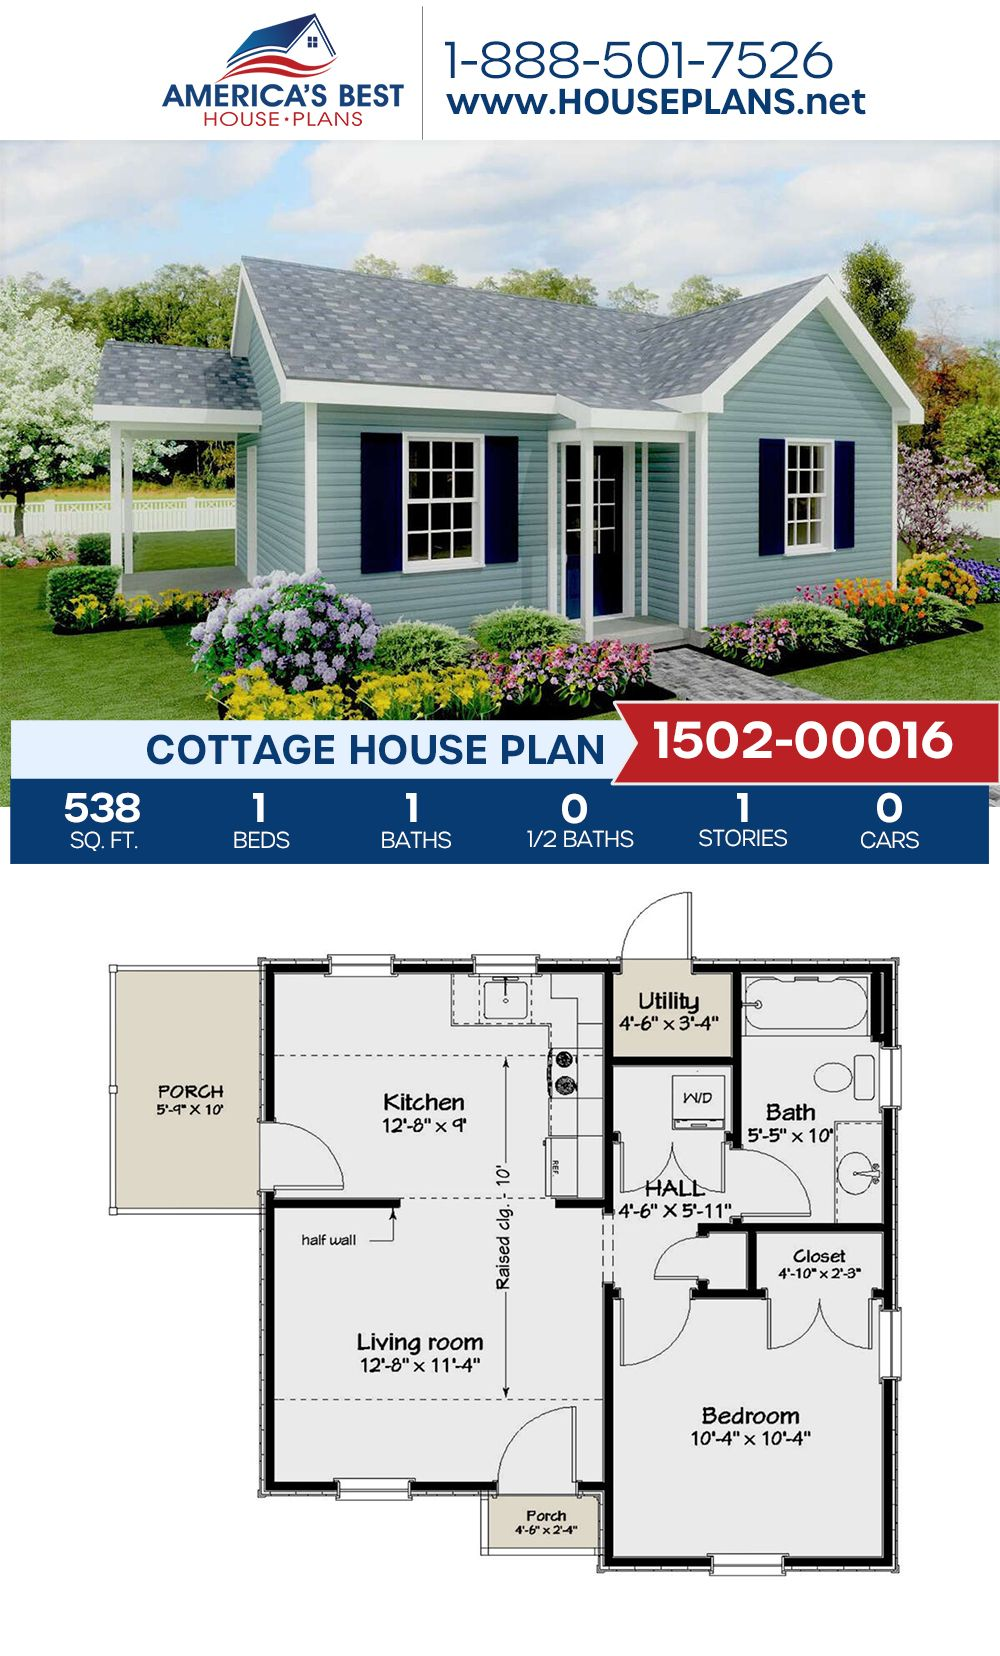 Plan 1502-00016 features a charming 538 sq. ft. Cottage home design complete with 1 bedroom, 1 bathroom, and an open floor plan. #cottagehome #cottagehouse #openfloorplan #architecture #houseplans #housedesign #homedesign #homedesigns #architecturalplans #newconstruction #floorplans #dreamhome #dreamhouseplans #abhouseplans #besthouseplans #newhome #newhouse #homesweethome #buildingahome #buildahome #residentialplans #residentialhome